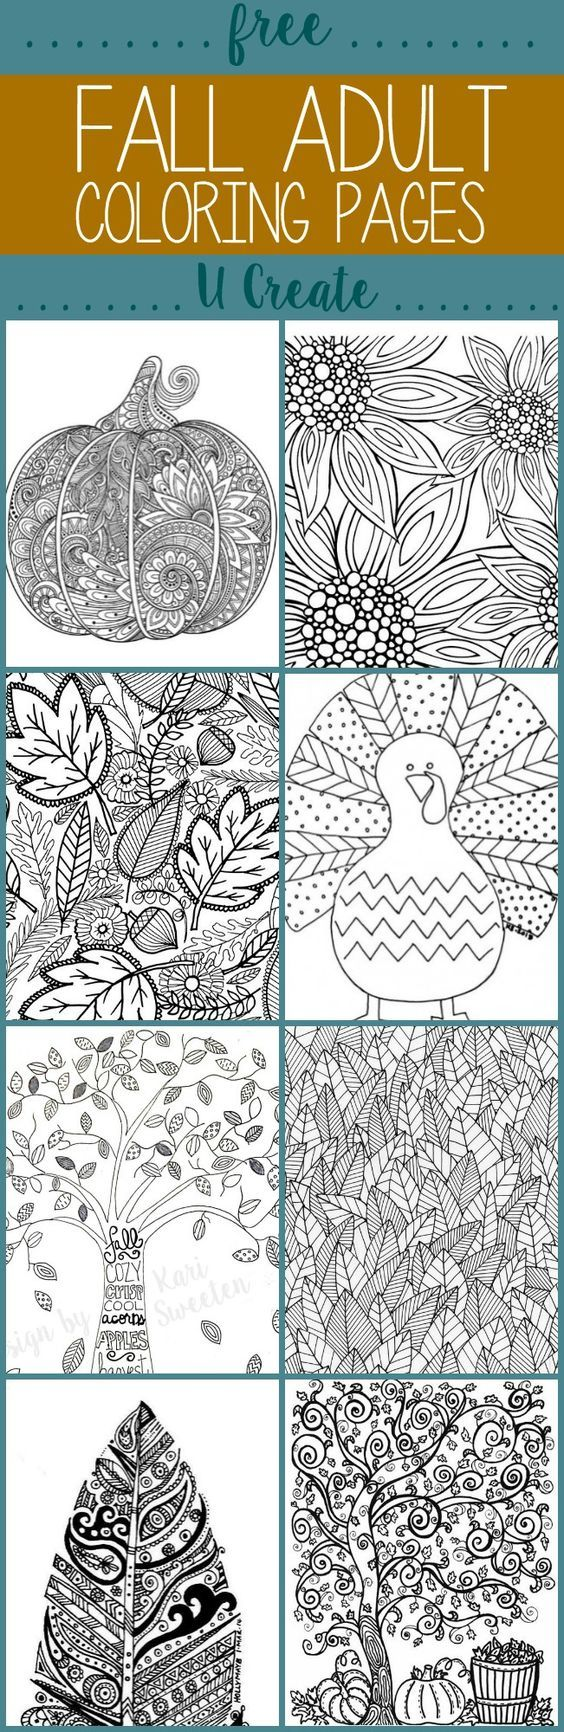 Free Fall Adult Coloring Pages: